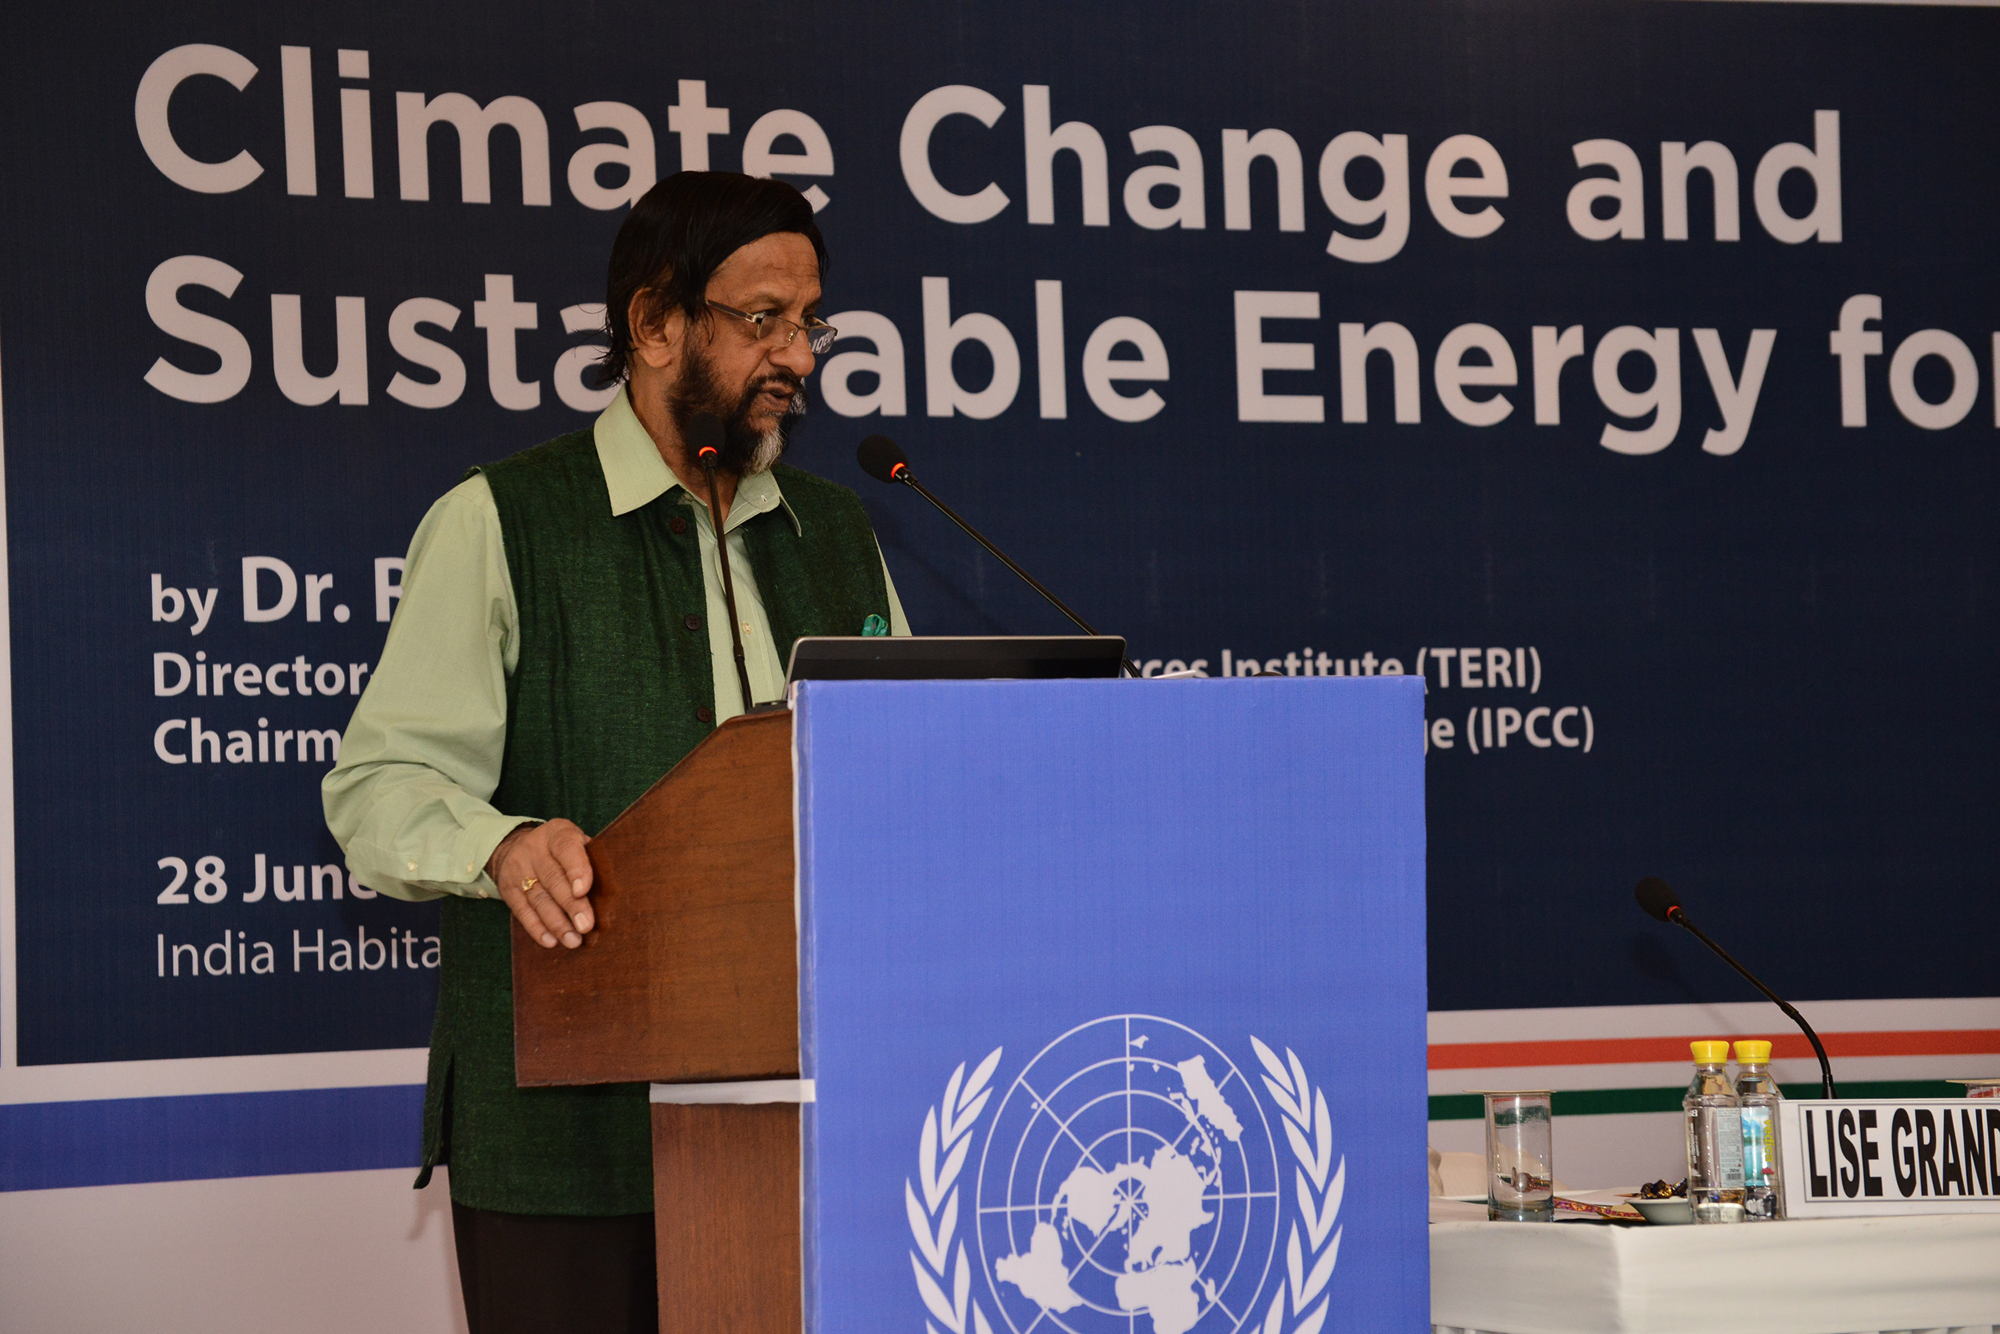 Addressing Climate Change and Sustainable Energy is Crucial to Meet India's Energy Shortage